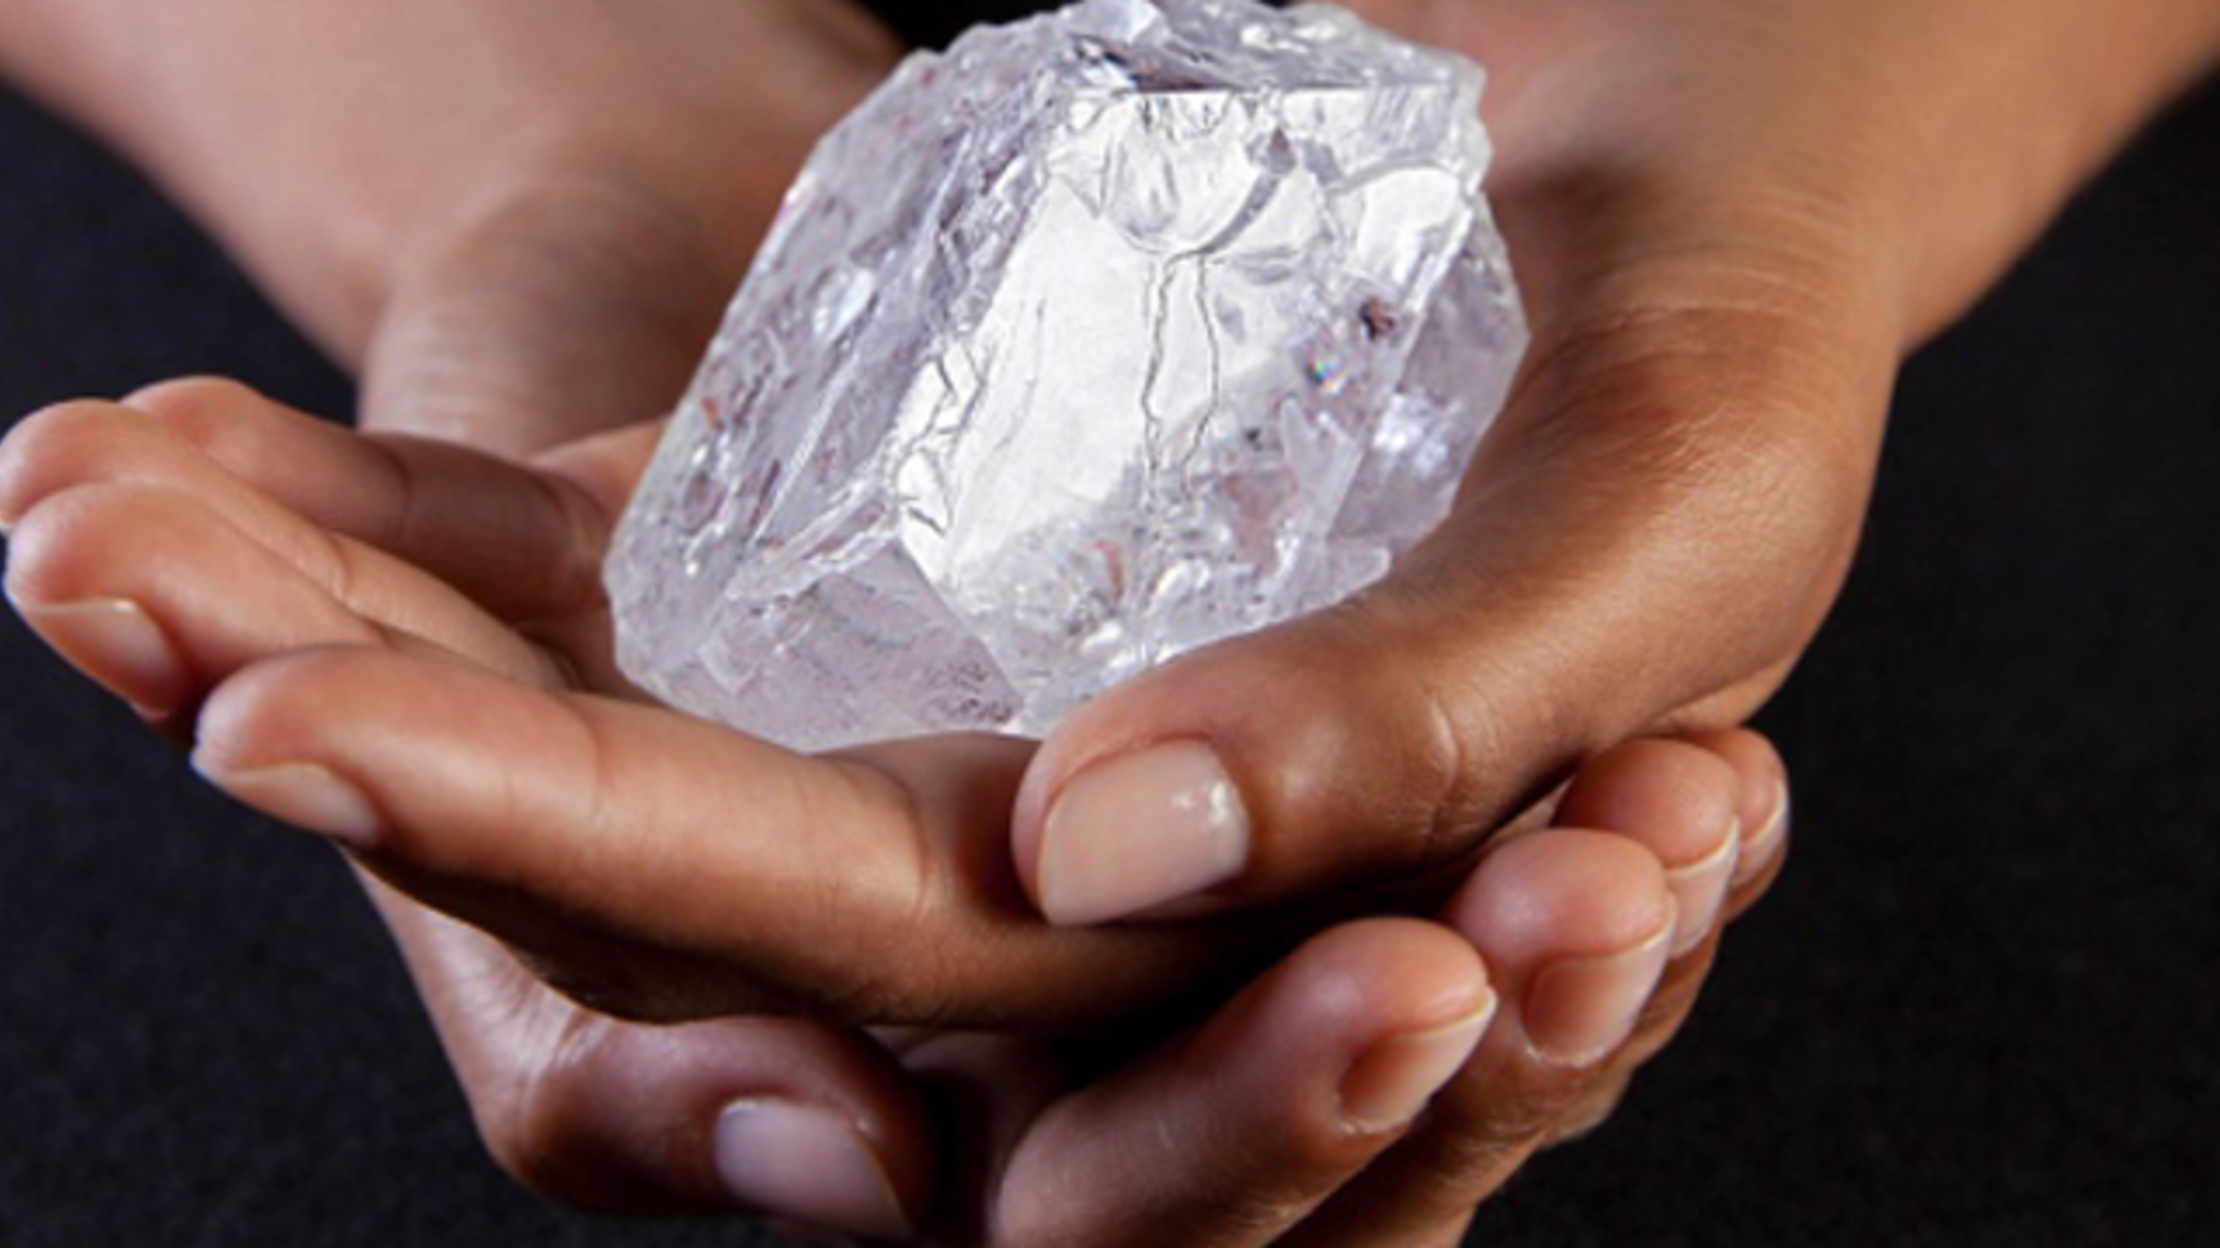 Tennis Ball-Sized Diamond Expected to Fetch More Than $70 Million at Auction